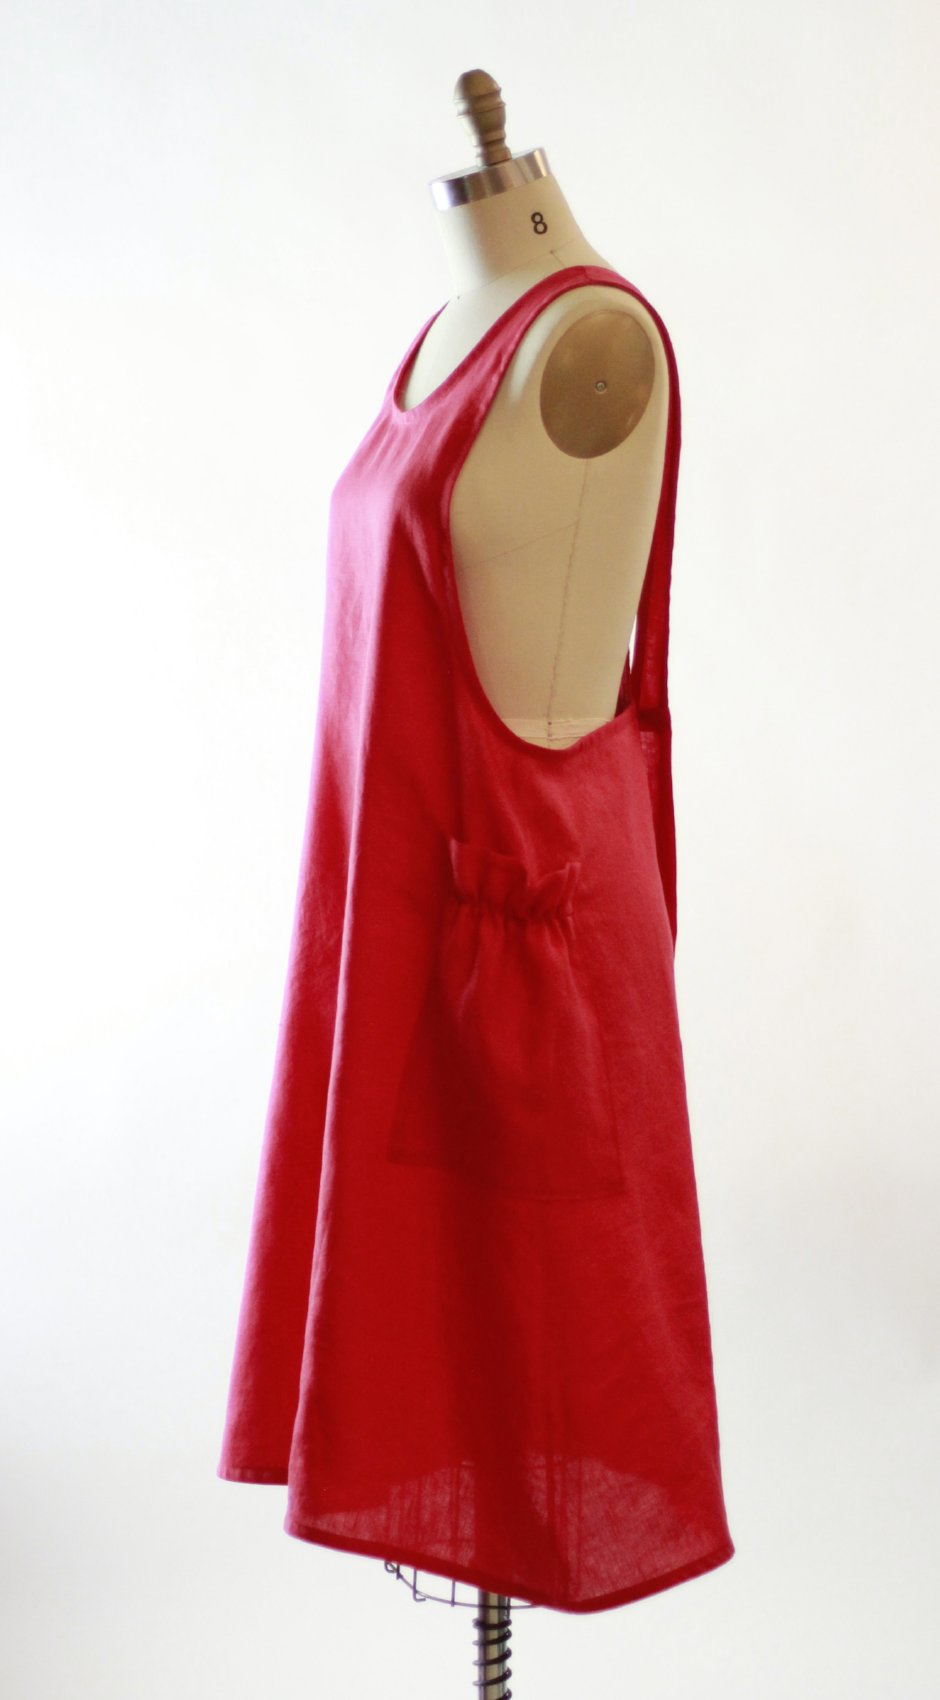 No Tie Crossback Apron in Red 100% Flax Linen XS-5X, side view